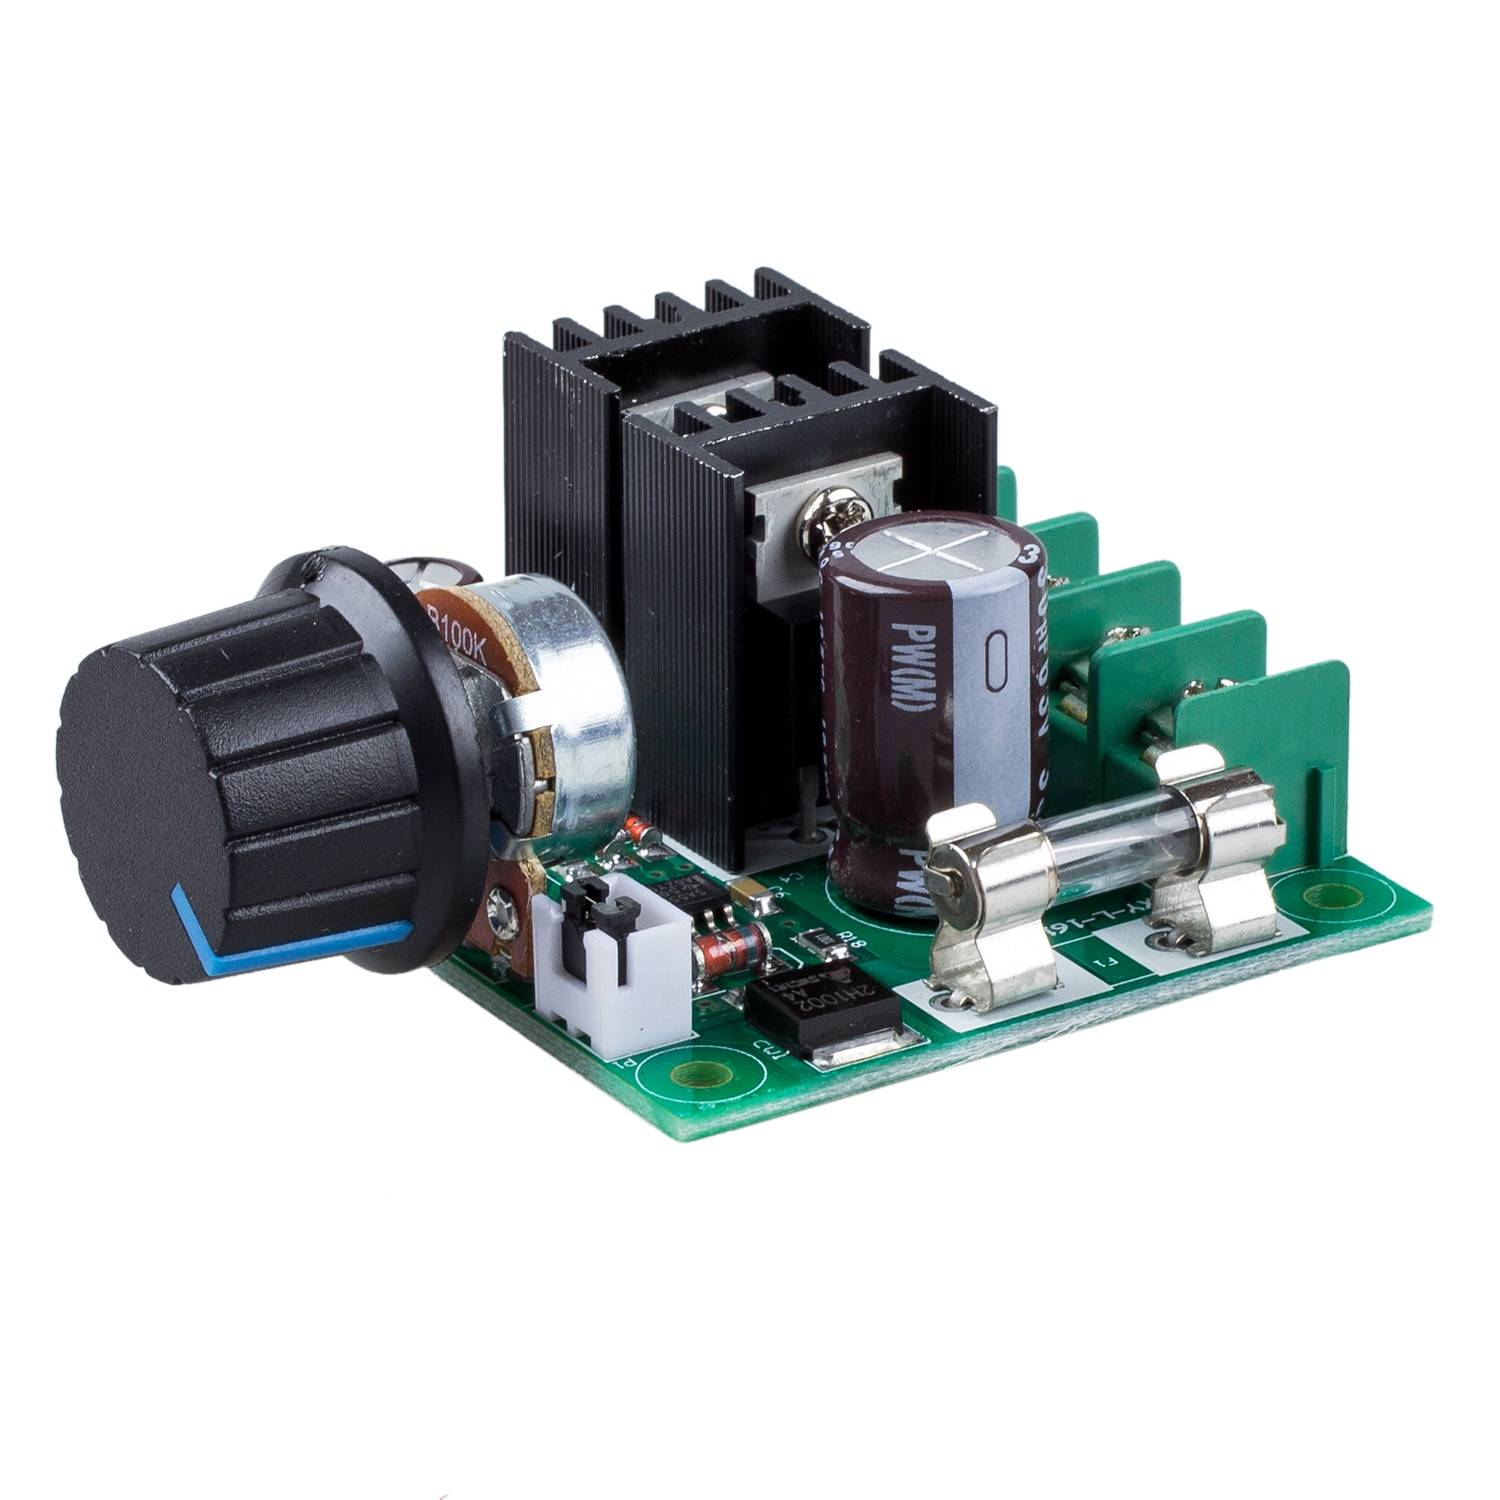 LHLL- 12V-40V 10A PWM DC Motor Speed Controller with Knob